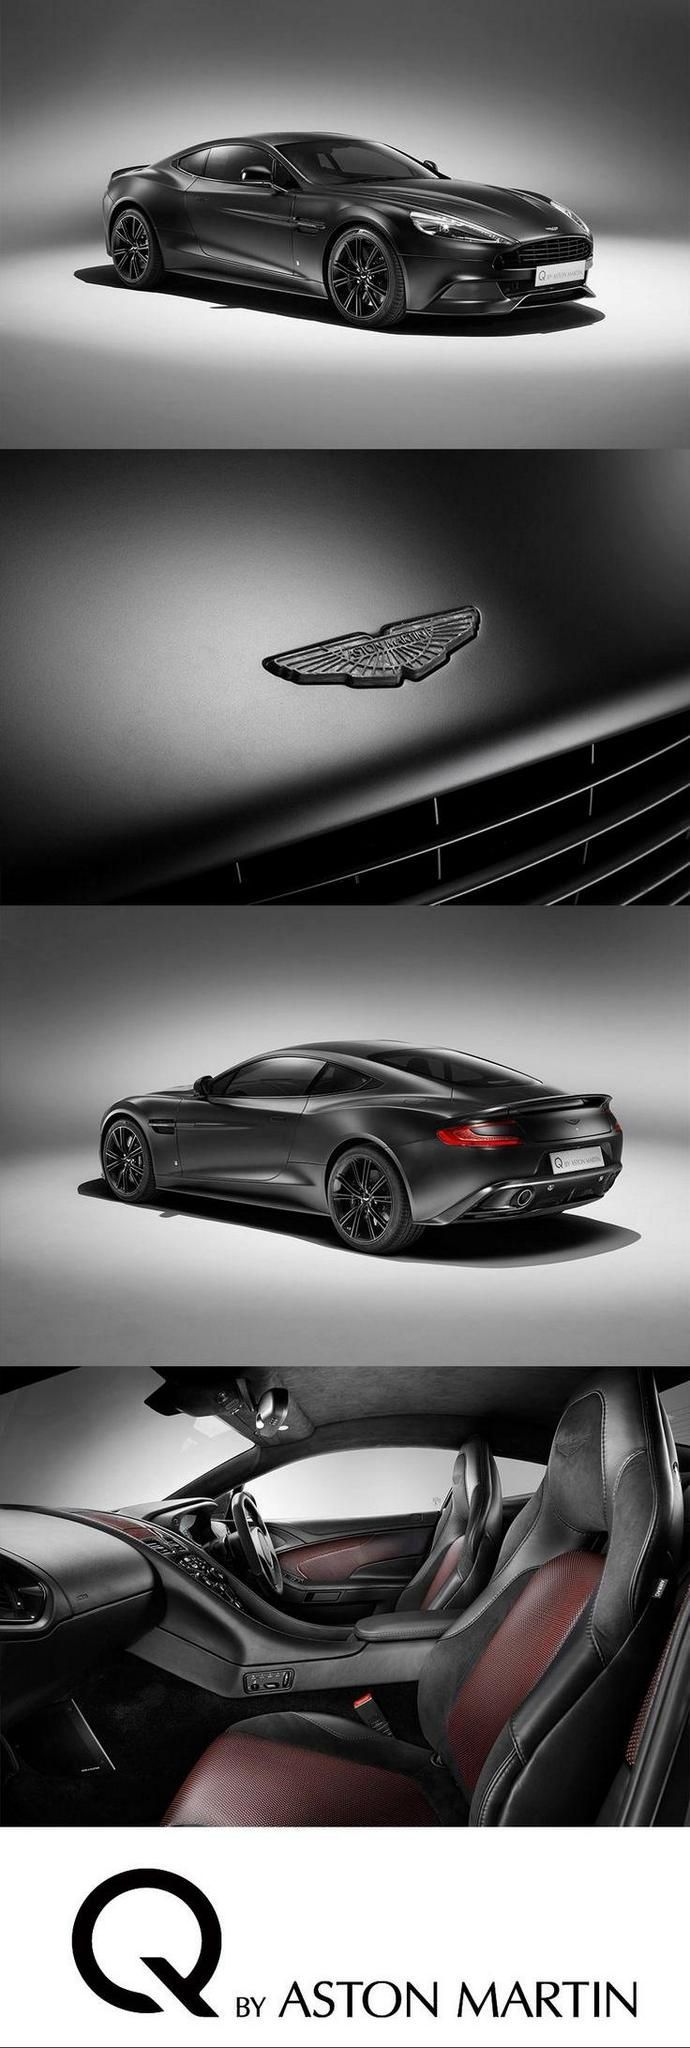 View the latest bespoke Q by Aston Martin creations on our dedicated Pinterest board: http://www.pinterest.com/astonmartin/q-by-aston-martin/ … #astonmartin